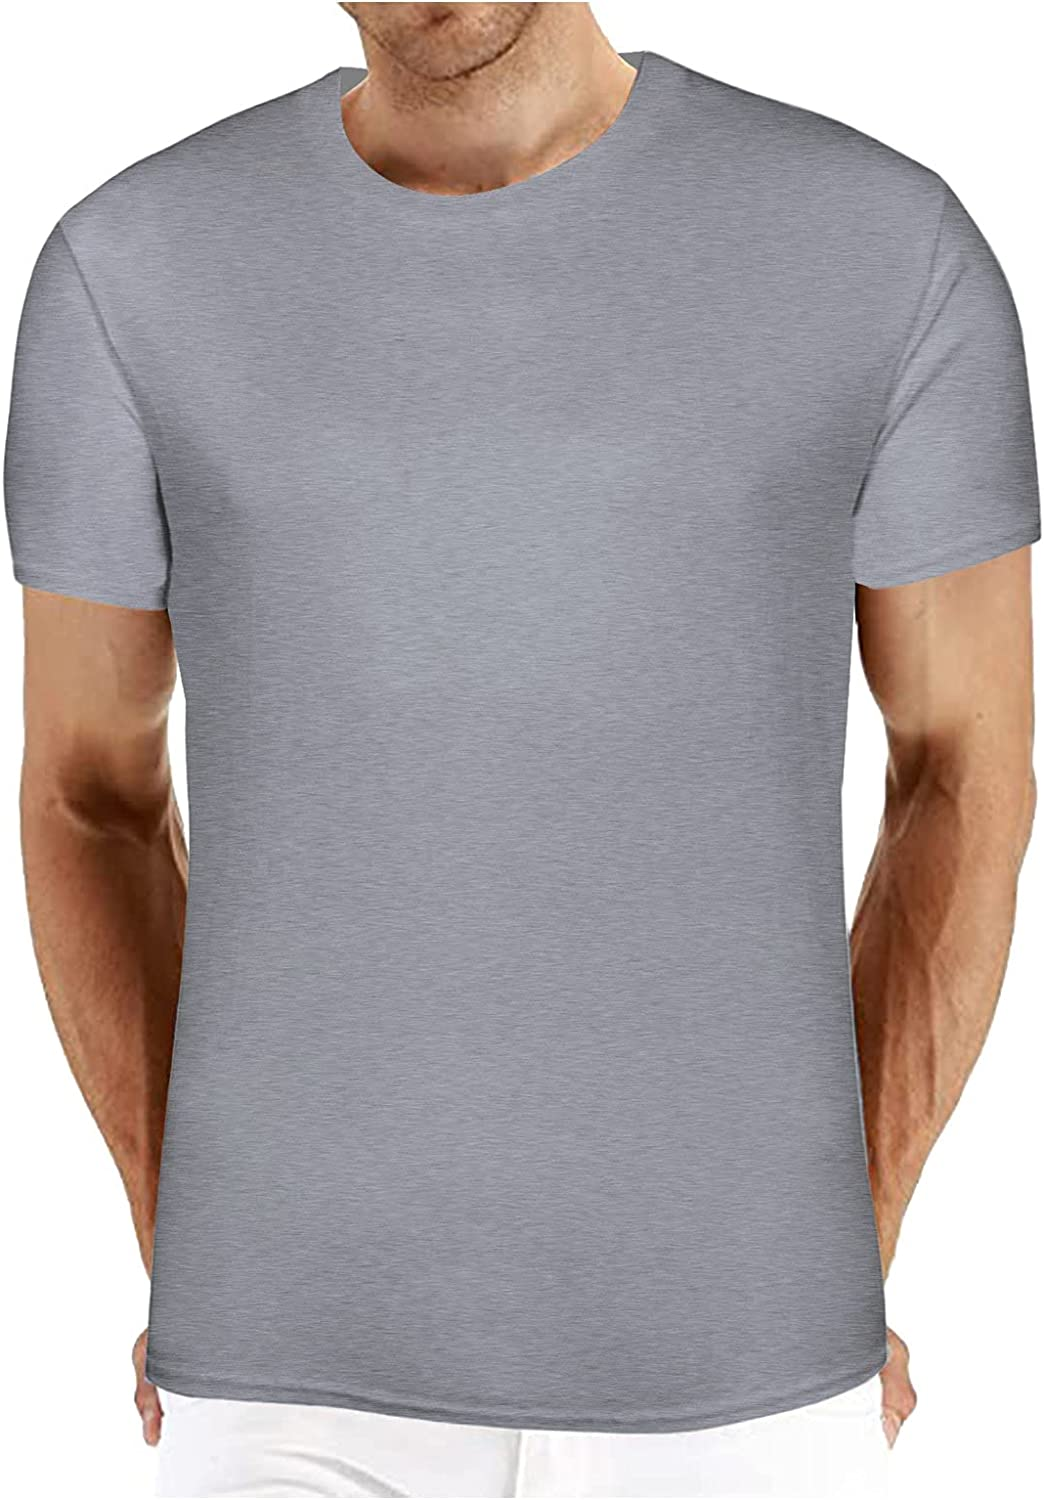 Mens Shirts Casual Summer Slim Fit Short Sleeve Solid Color Round Neck Basic T-Shirt Jacket Top